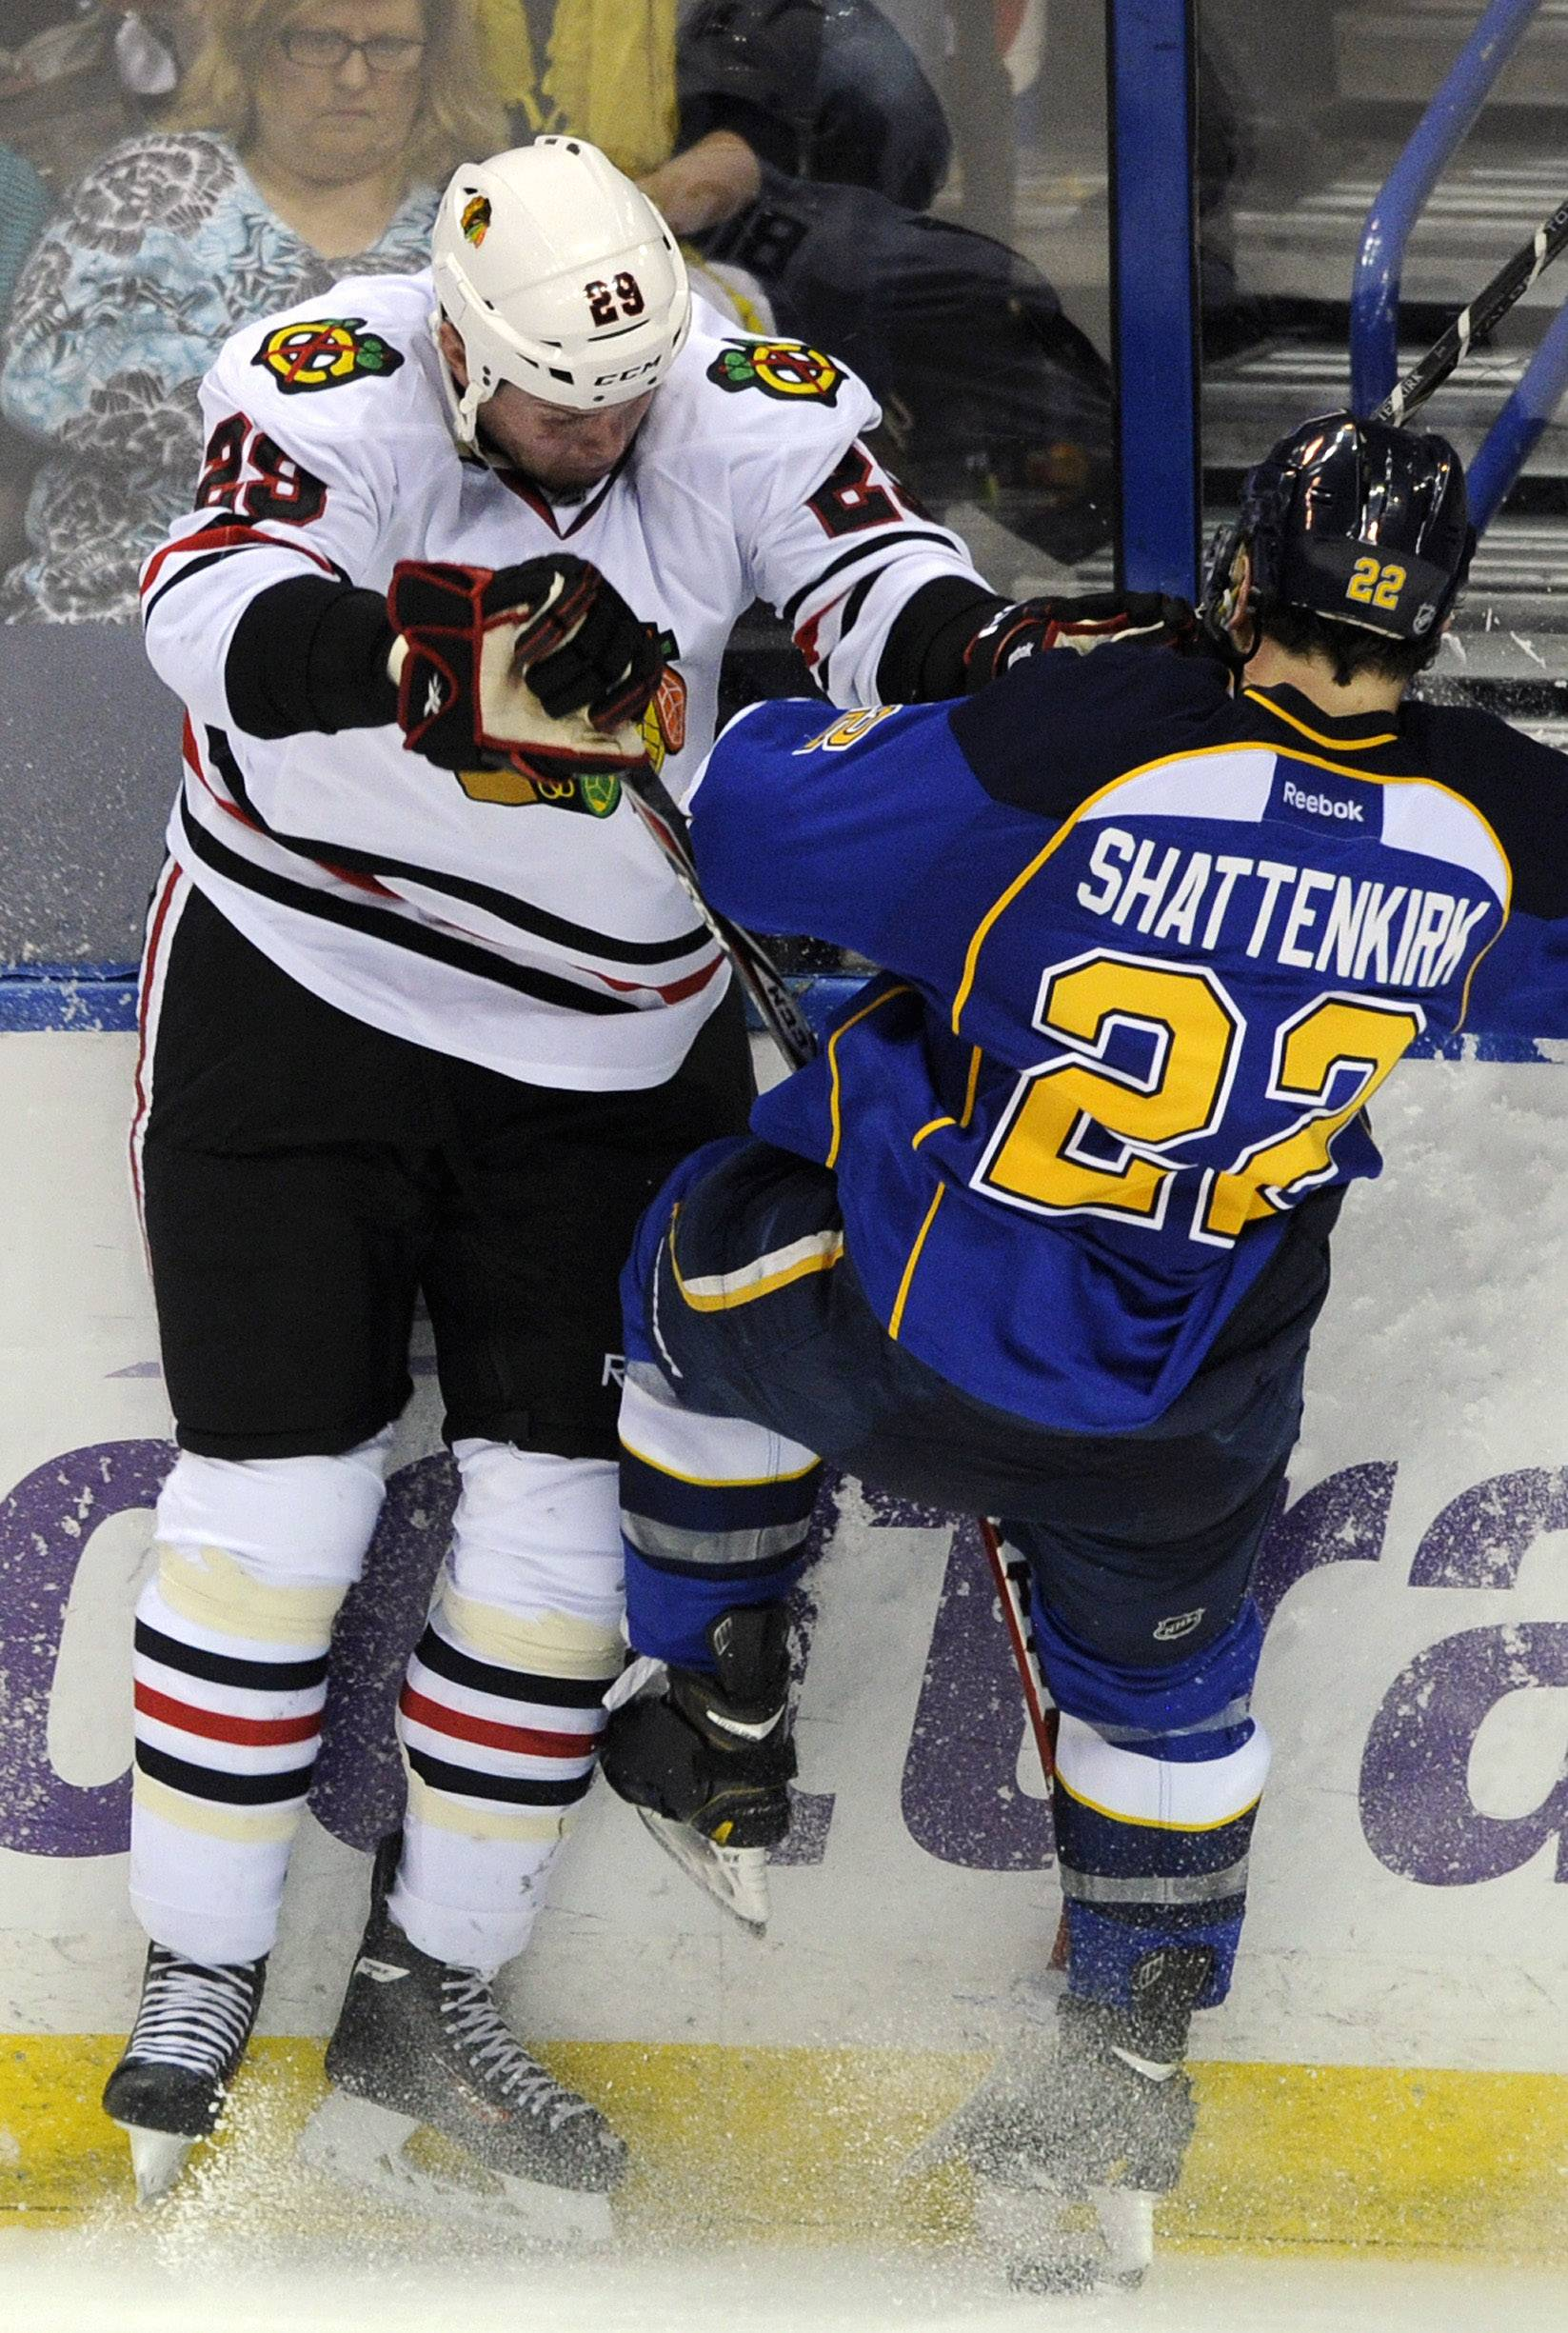 St. Louis Blues' Kevin Shattenkirk (22) collides with Chicago Blackhawks' Bryan Bickell (29) during the third period in Game 2 of a first-round NHL hockey playoff series, Saturday, April 19, 2014, in St. Louis.